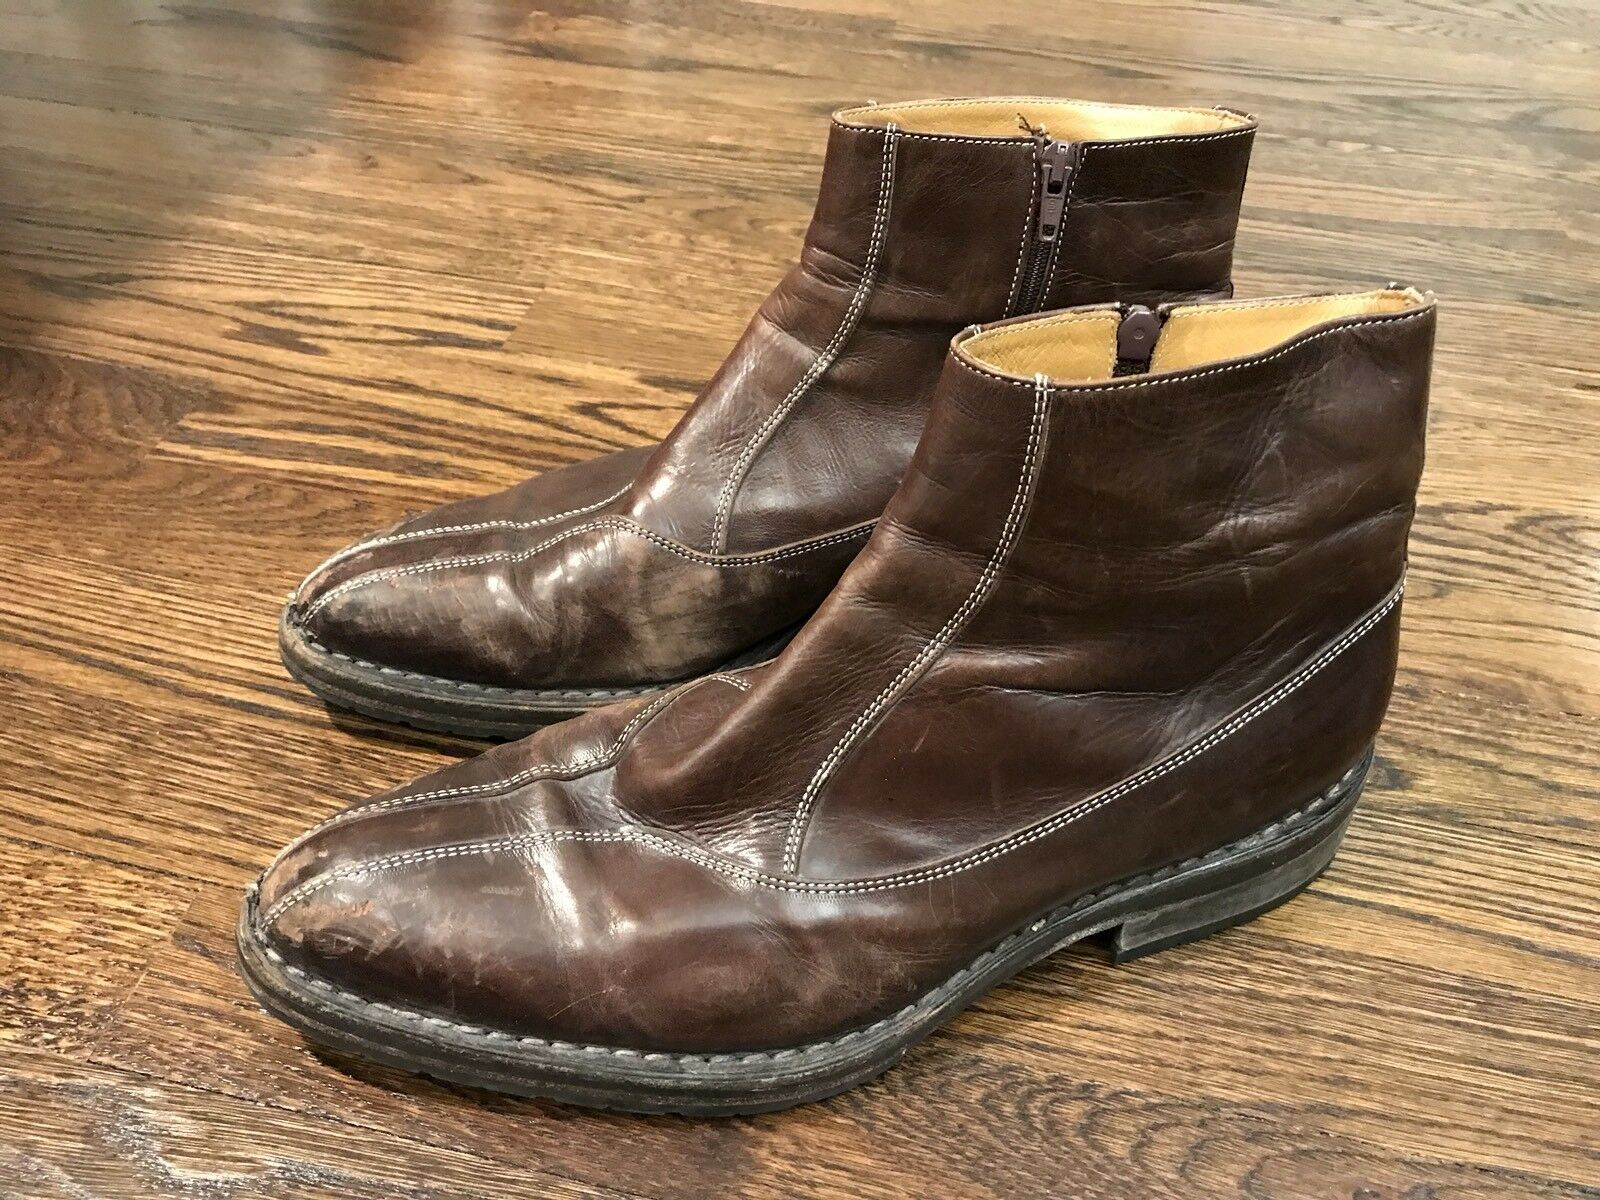 Francesco Benigno Brown Leather shoes boots Sz US 10.5 EU 44